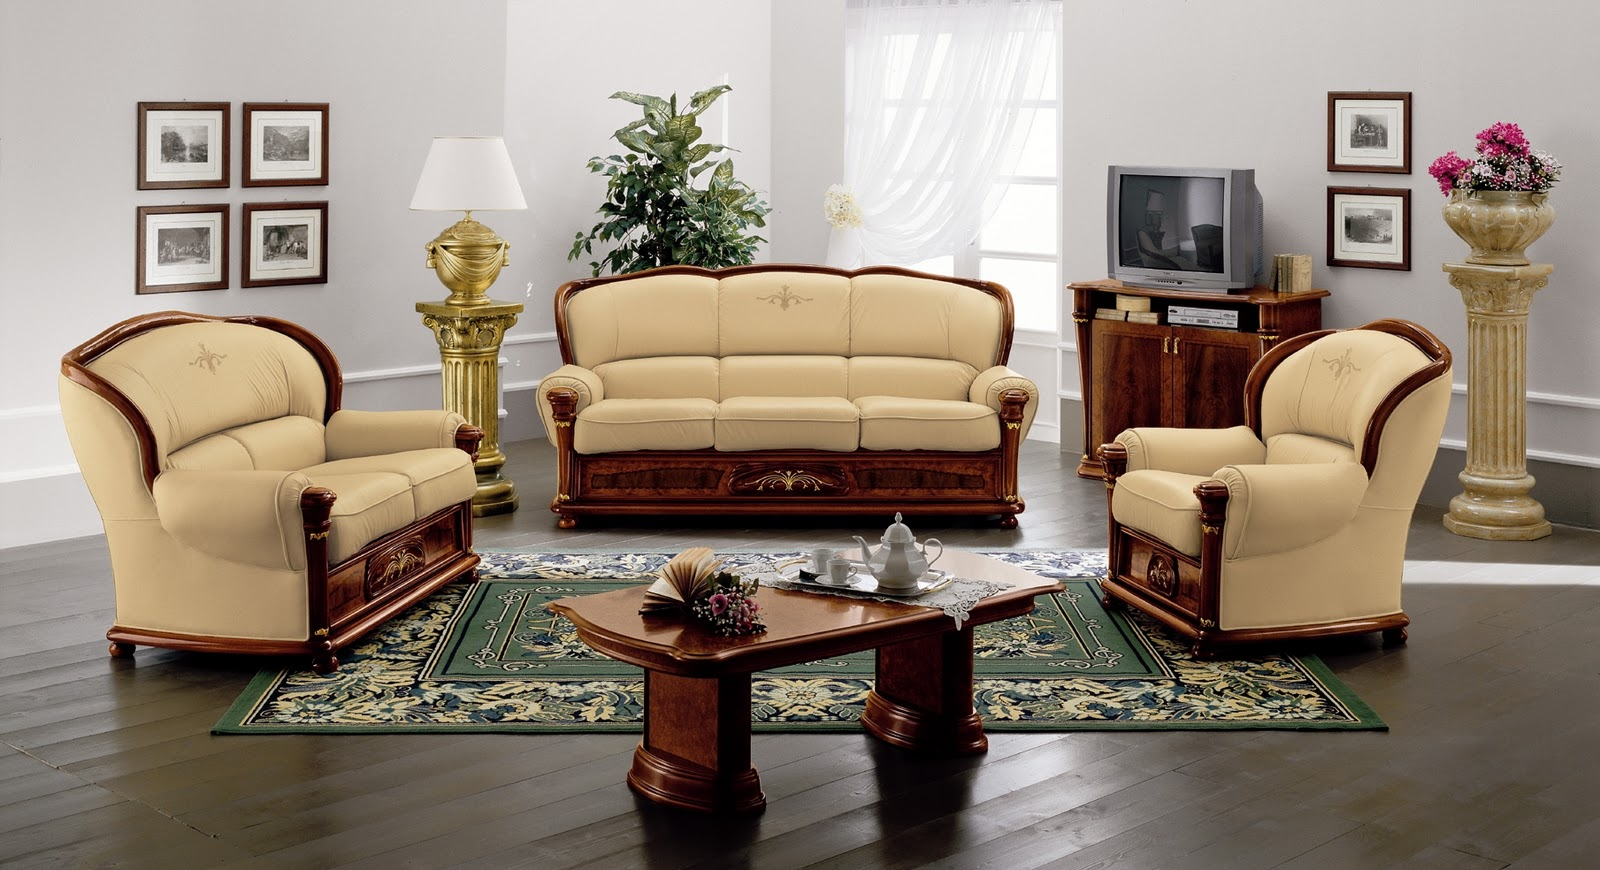 Living room sofa design photos living room interior designs for Room design ideas in pakistan